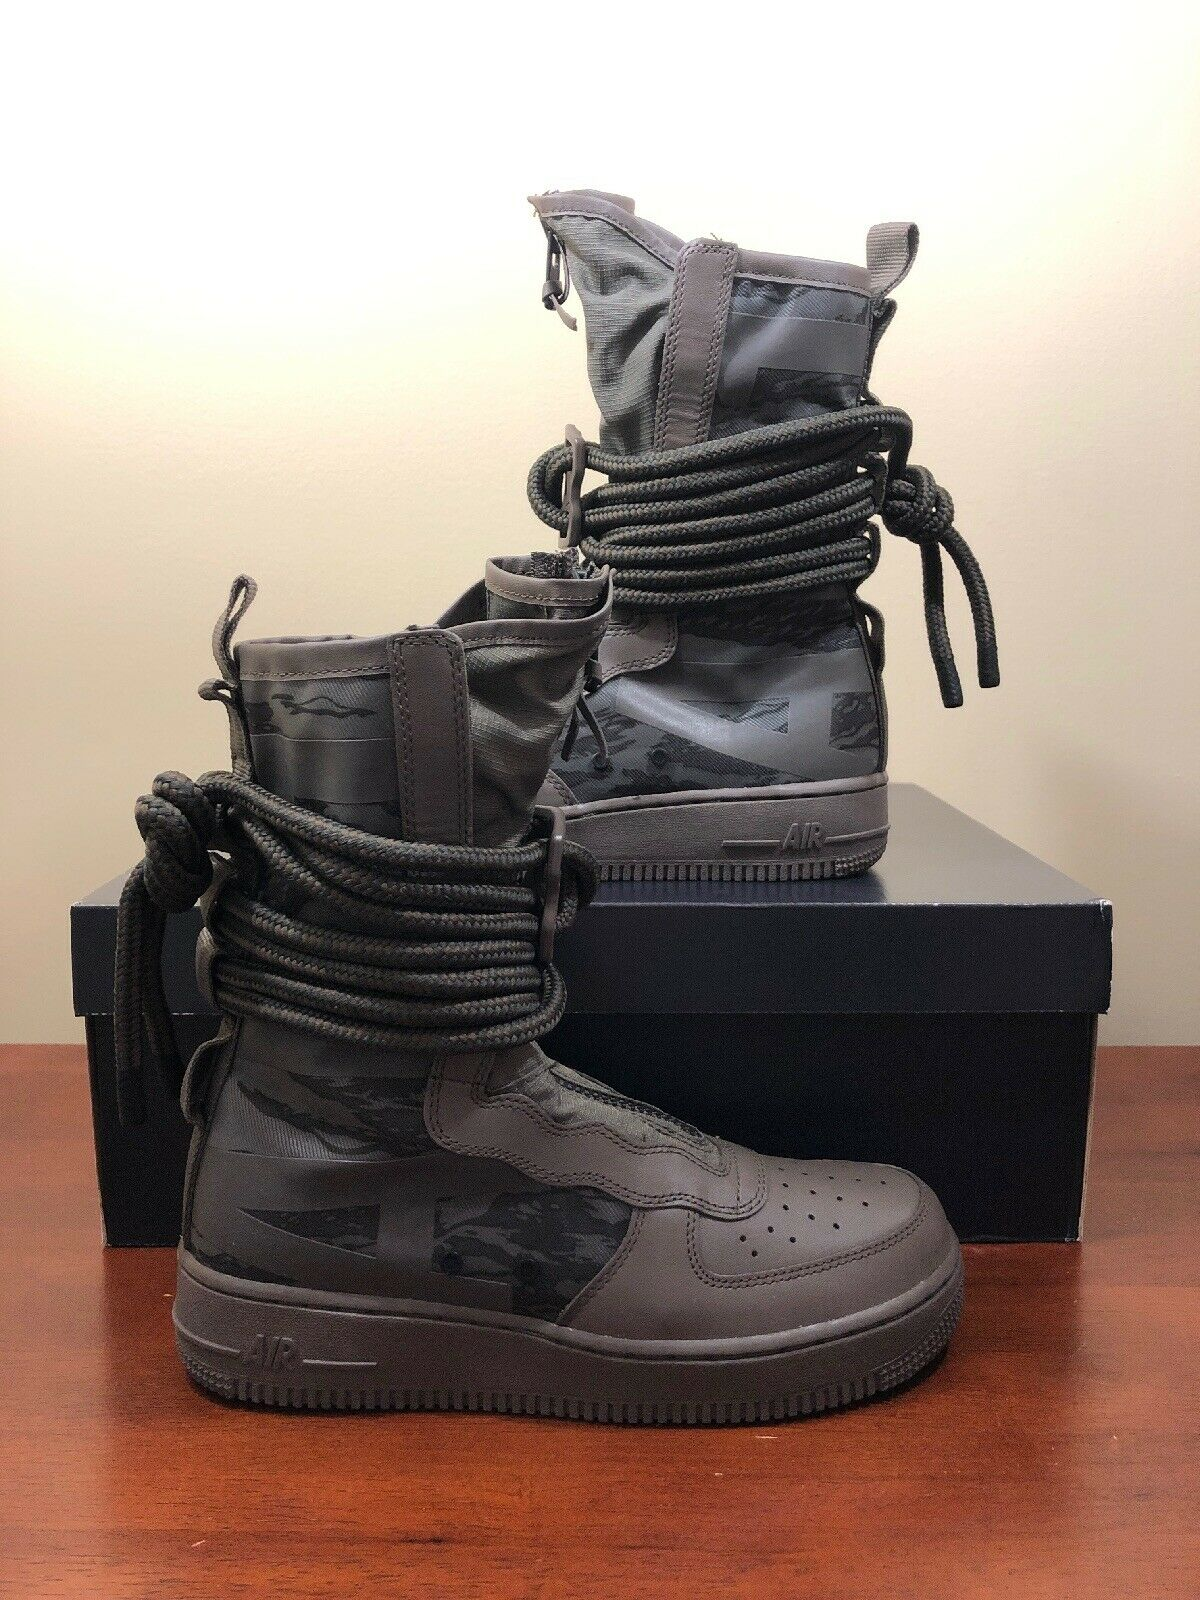 NIKE SF AF-1 HIGH AIR FORCE 1 BOOT Size 12 AF1 RIDGEROCK SEQUOIA AA1128 203